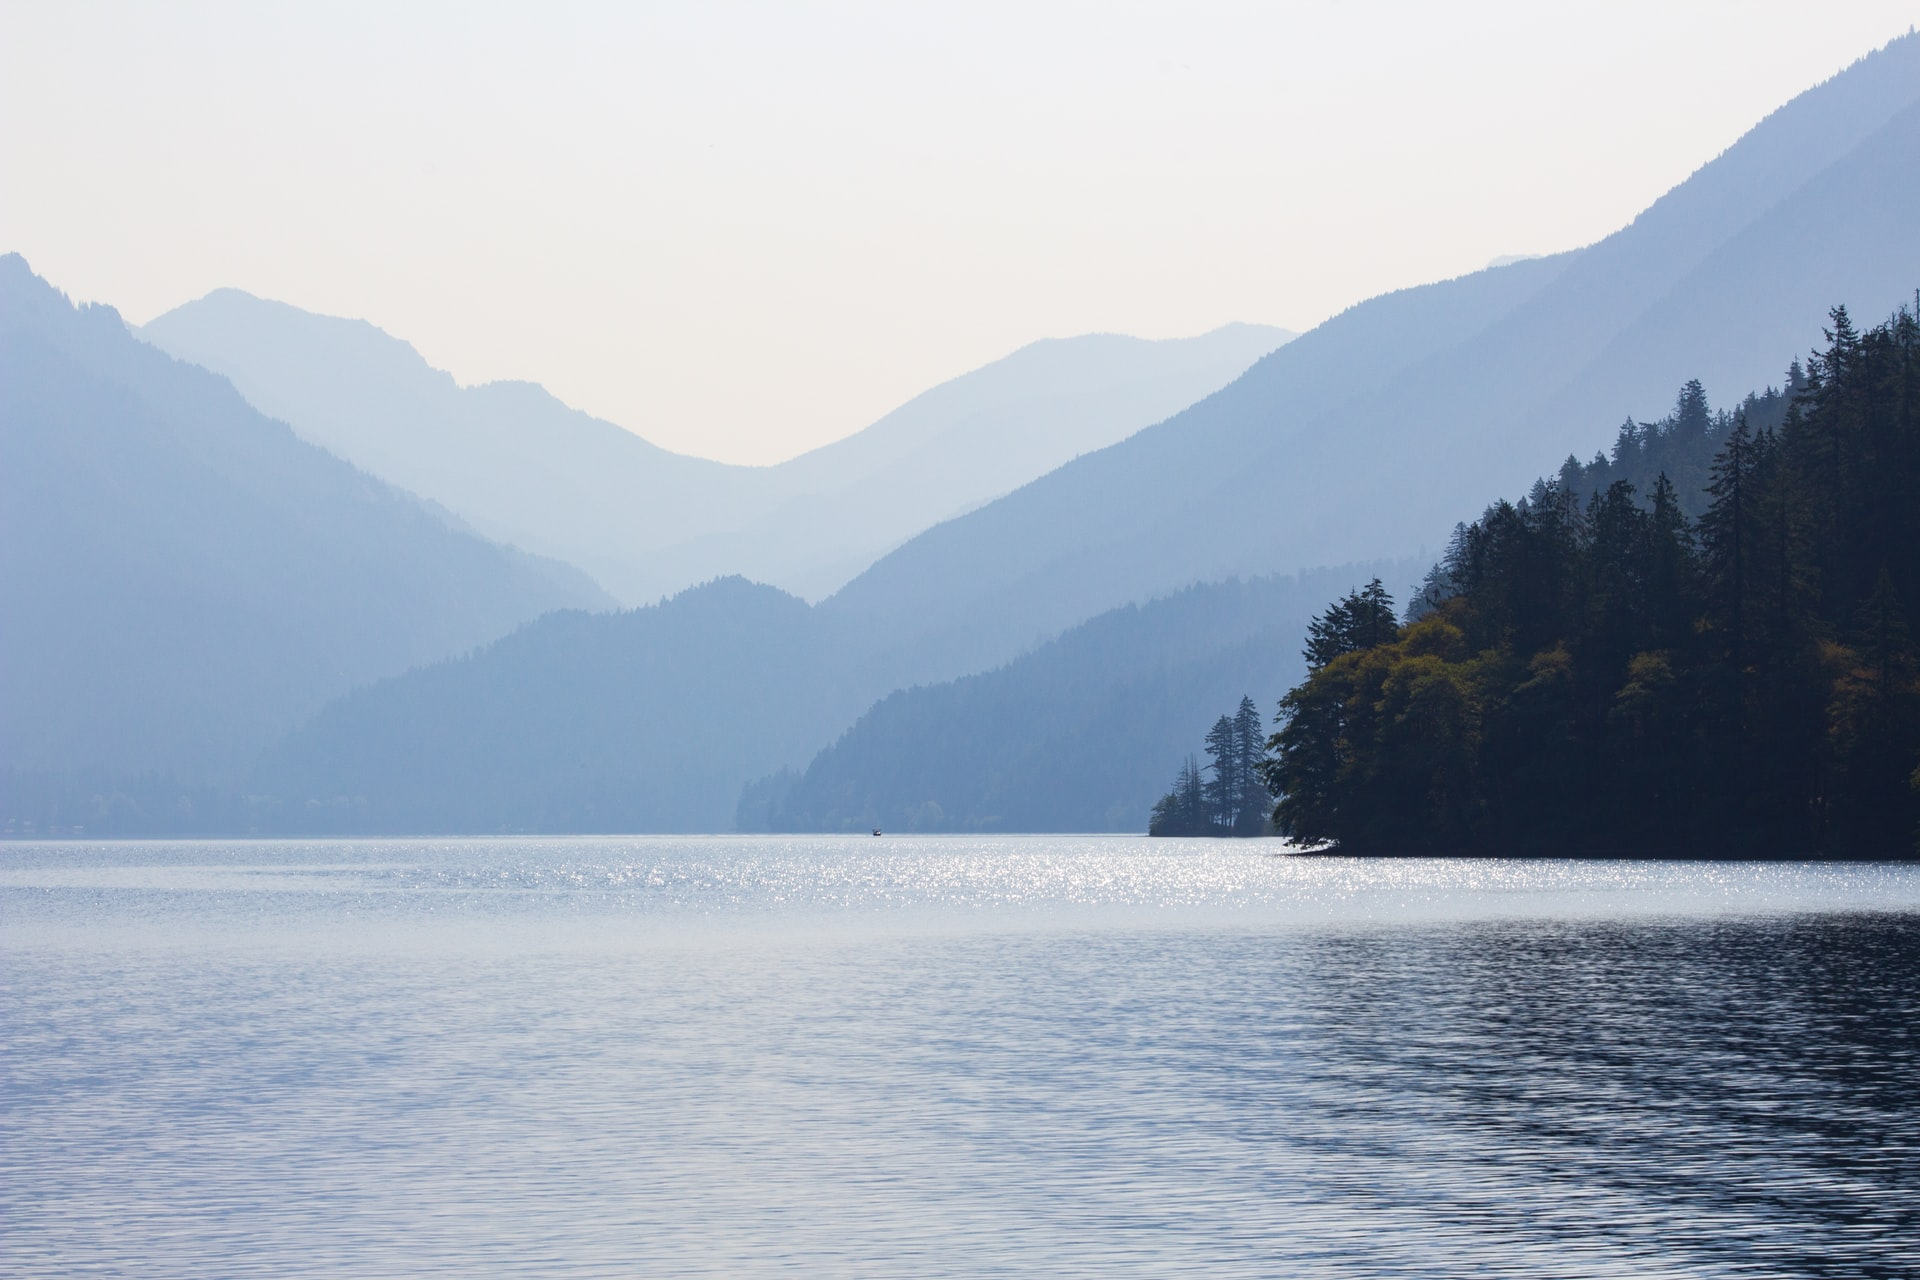 trees beside body of water distant from mountain